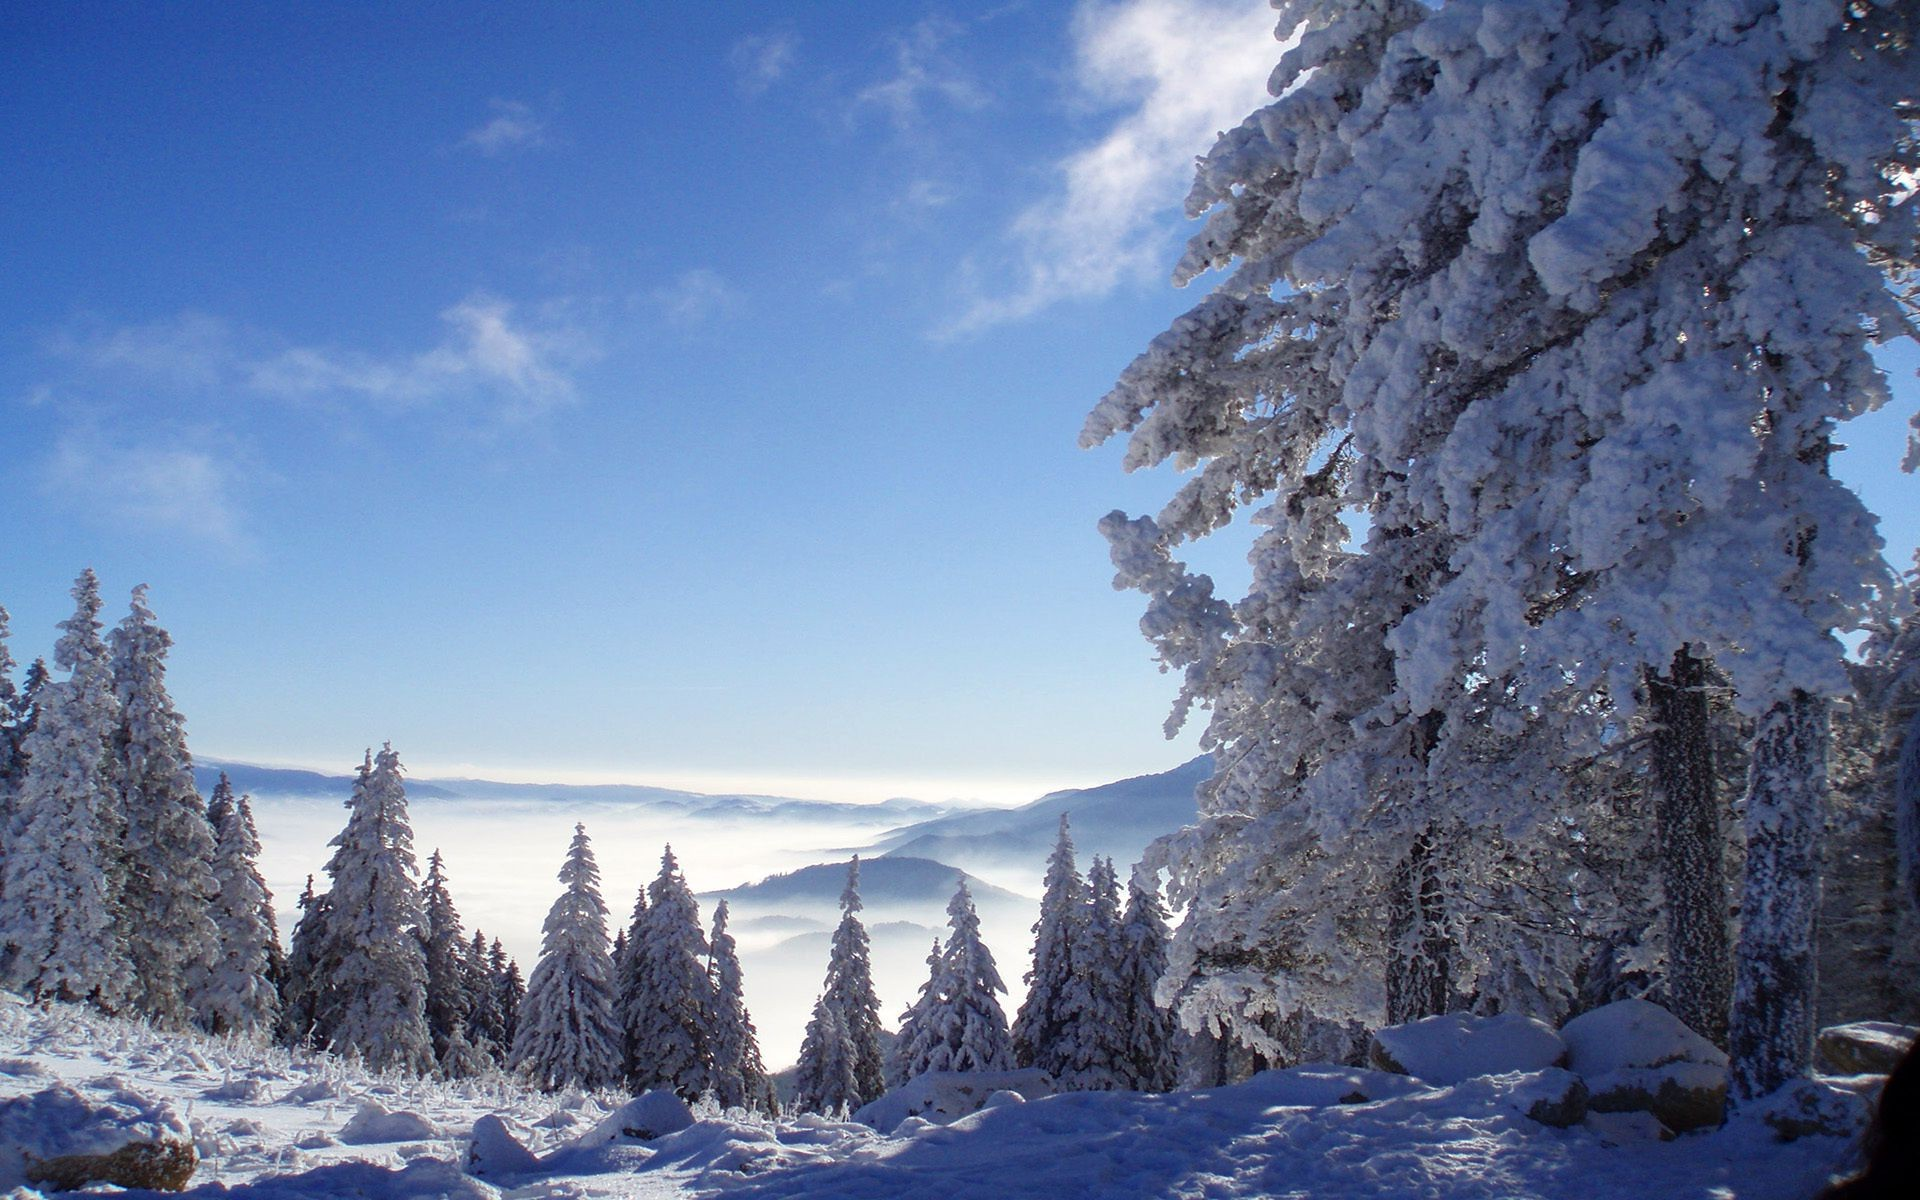 winter snow nature mountains forest